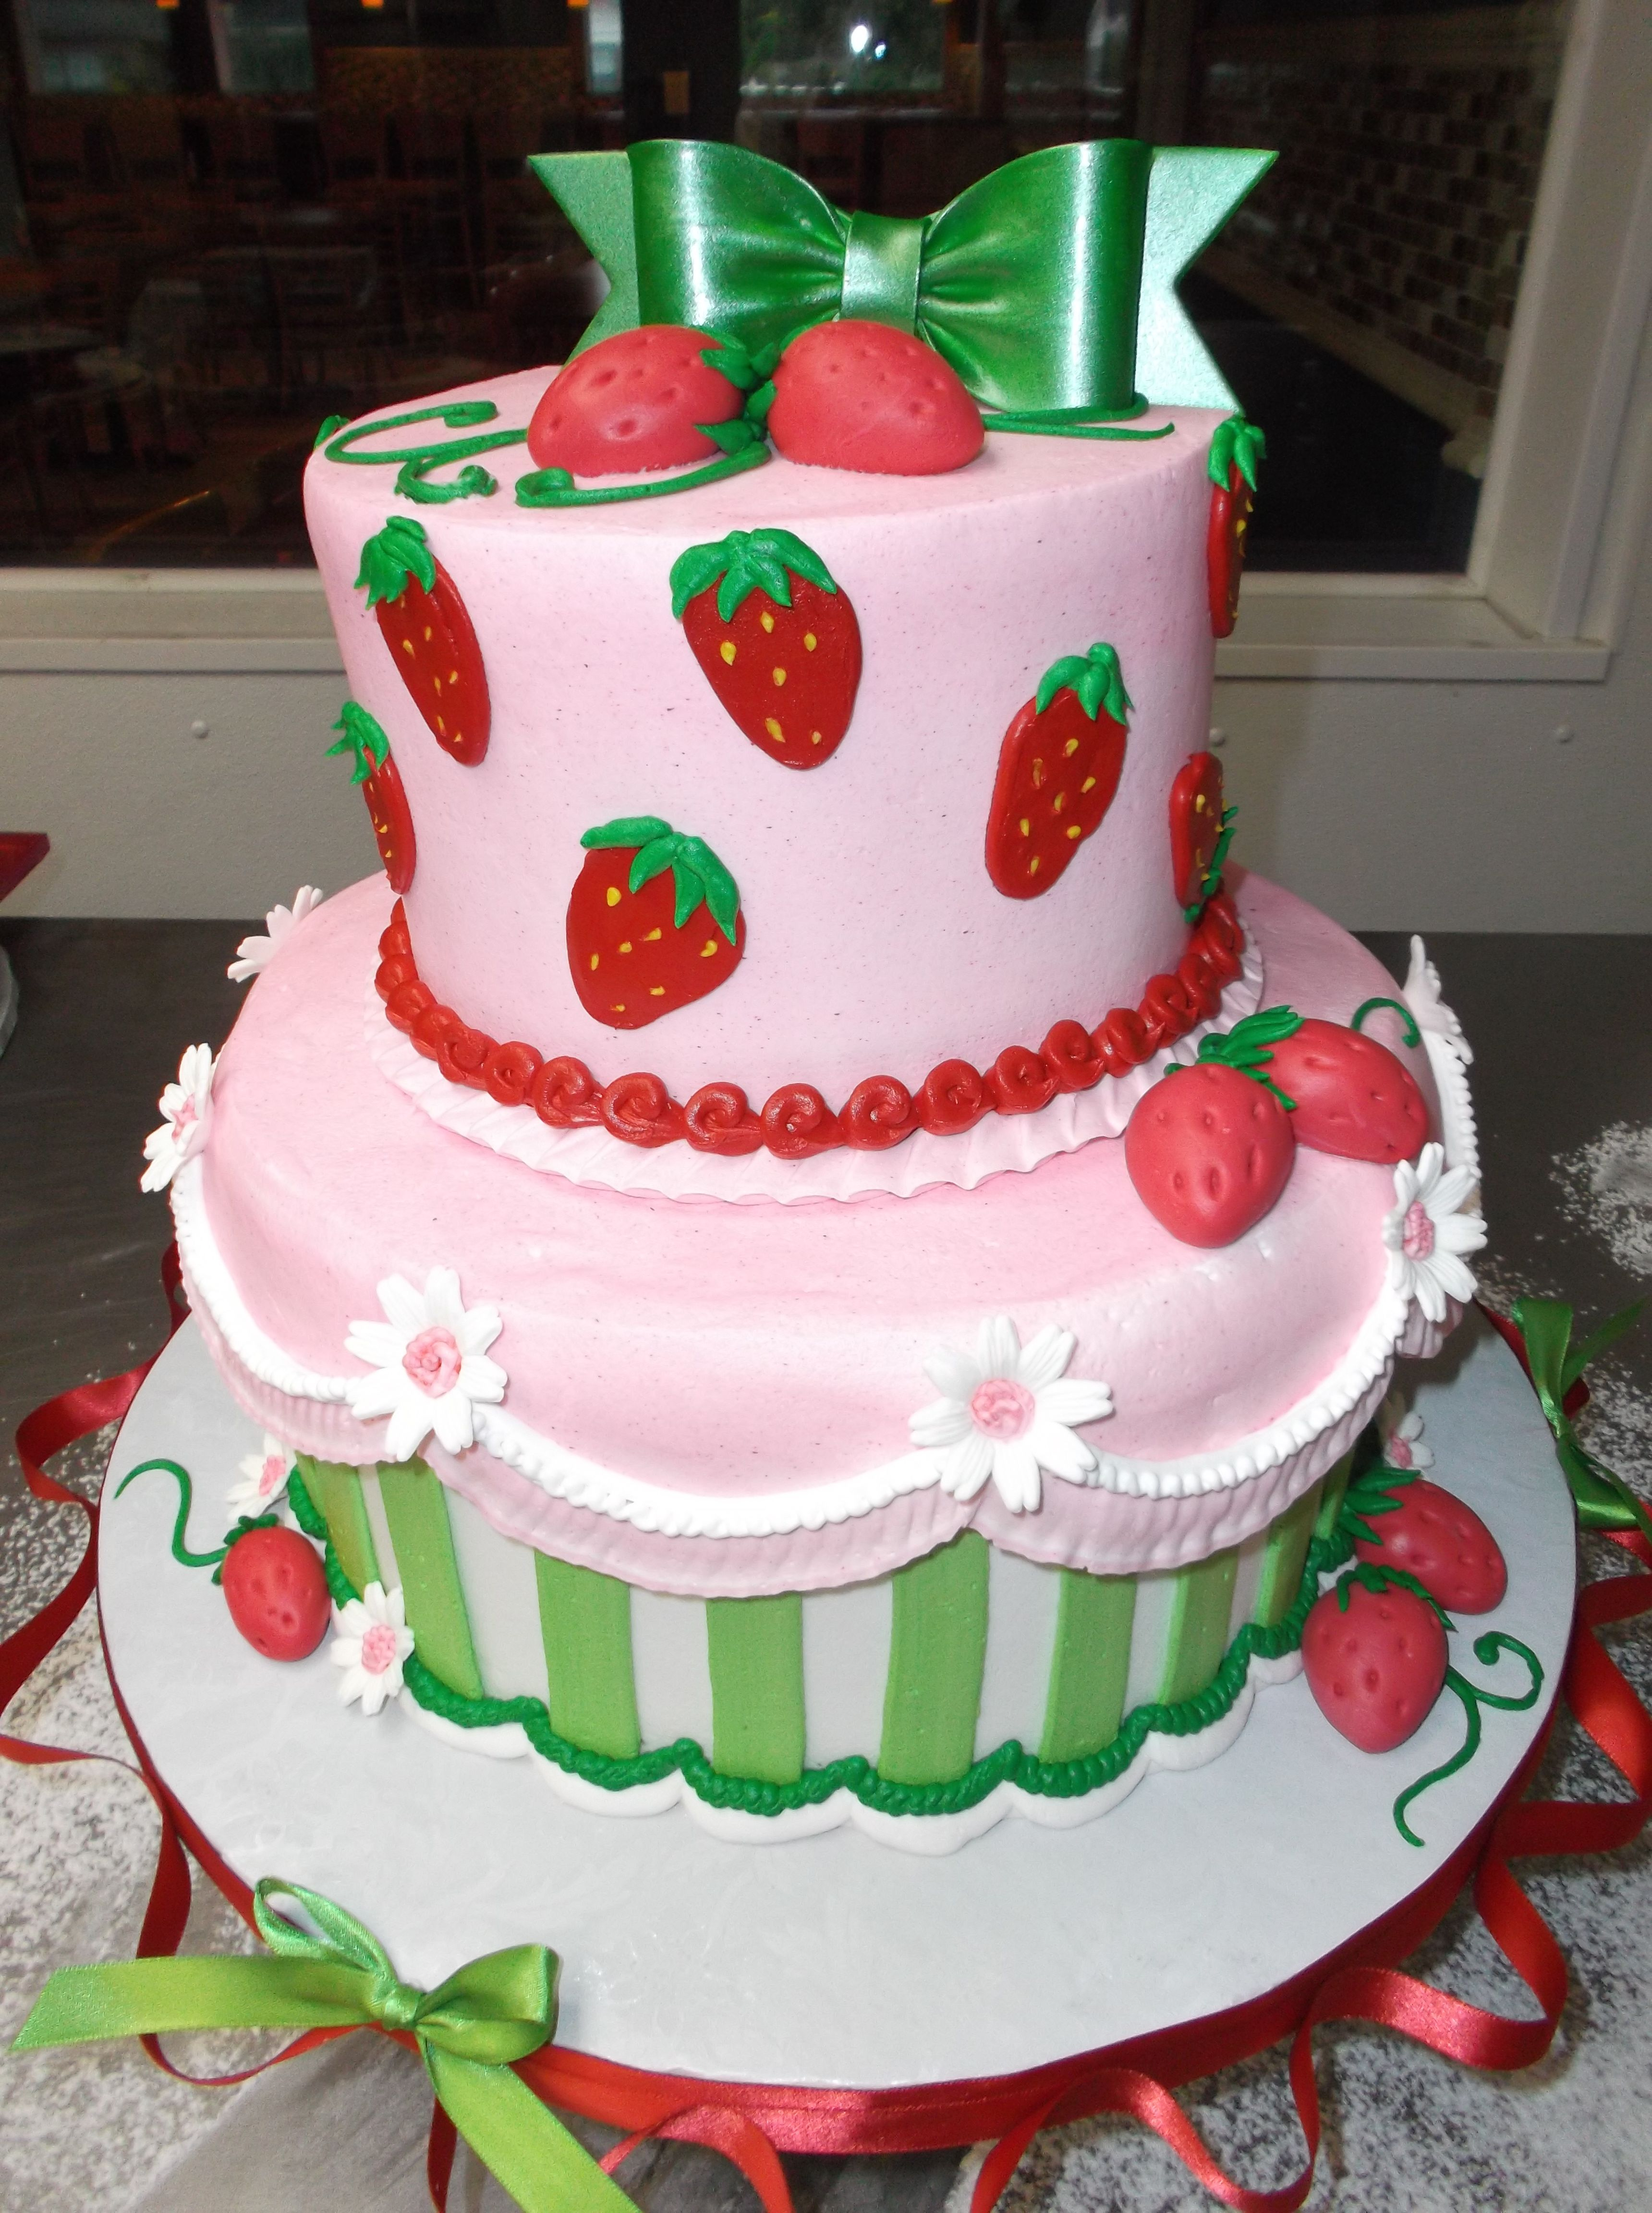 Pin by Melissa Thoele-Maggiore on Our Alessi Bakery Cakes ...